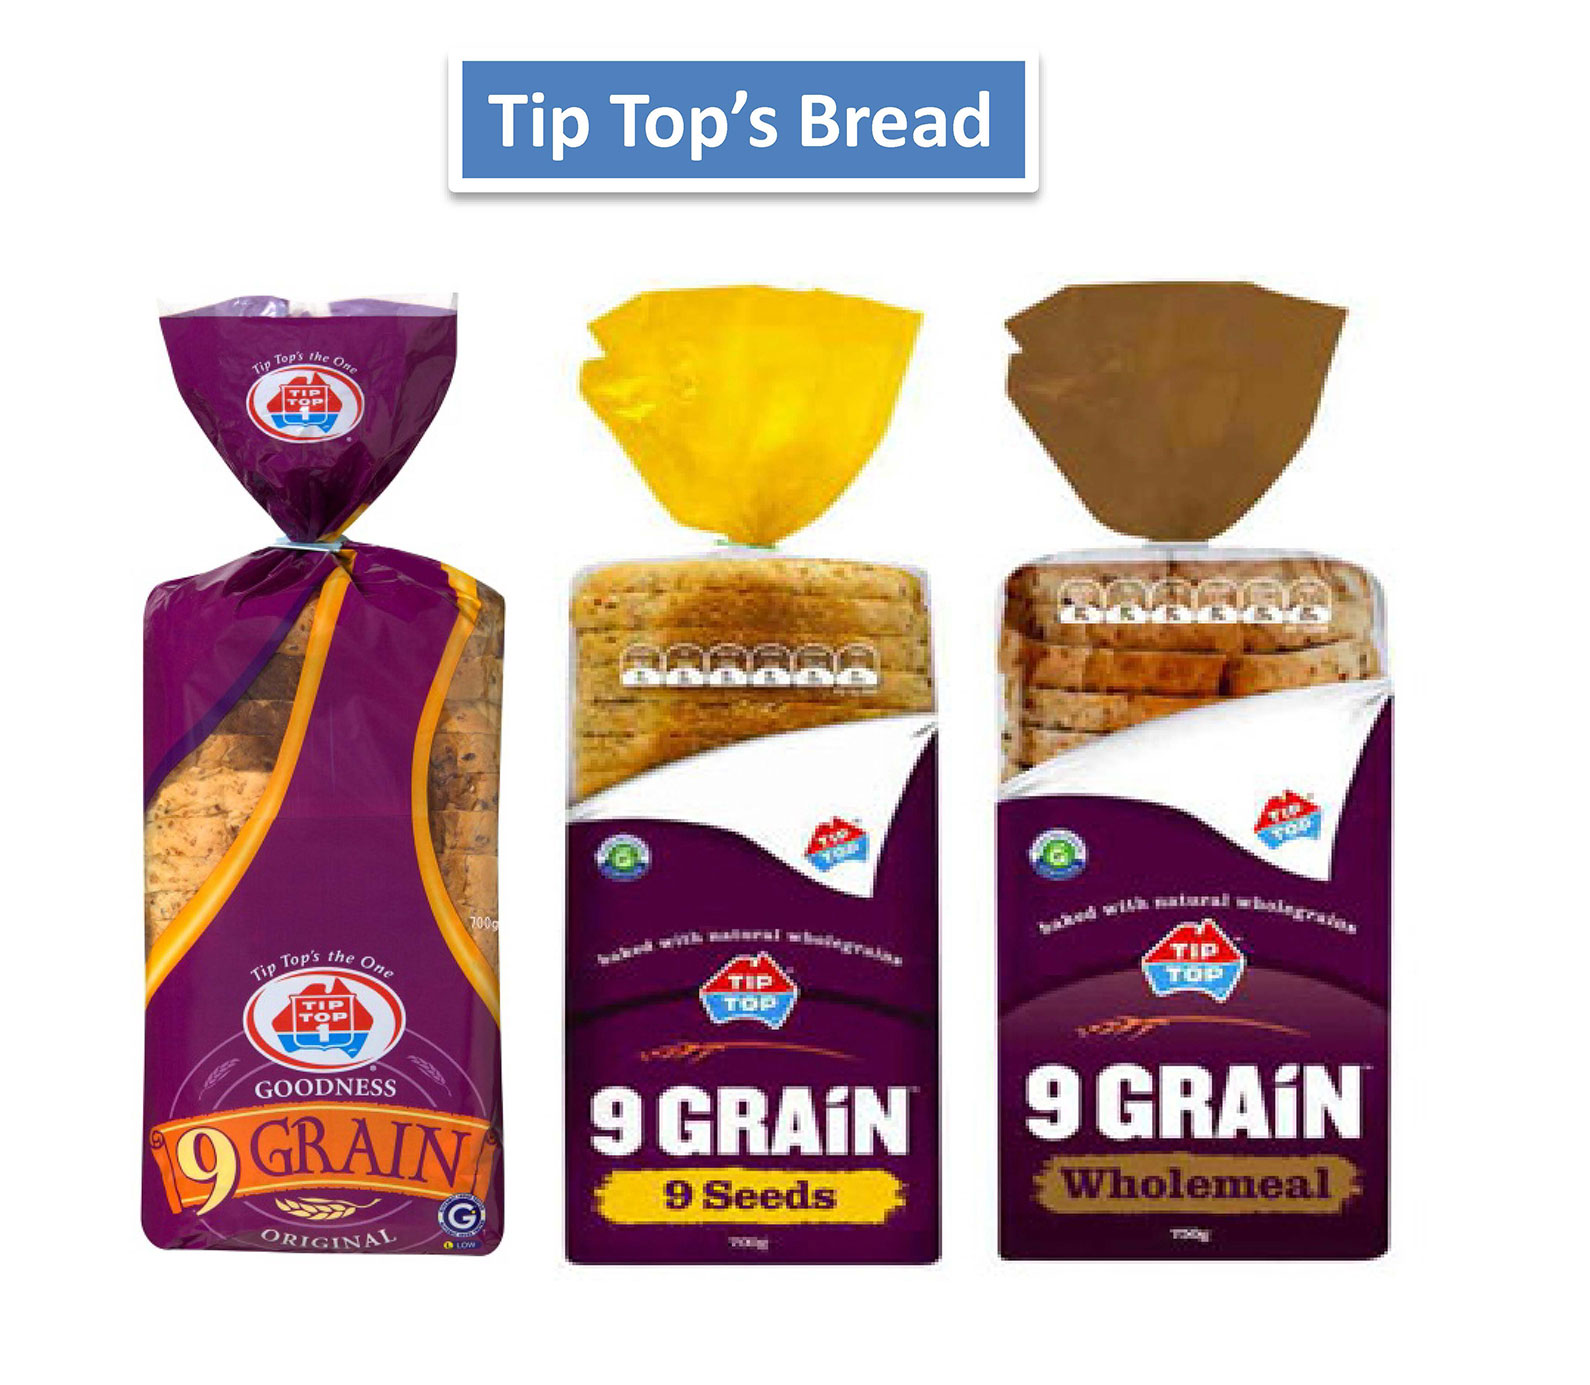 Tip top image for choosing breads